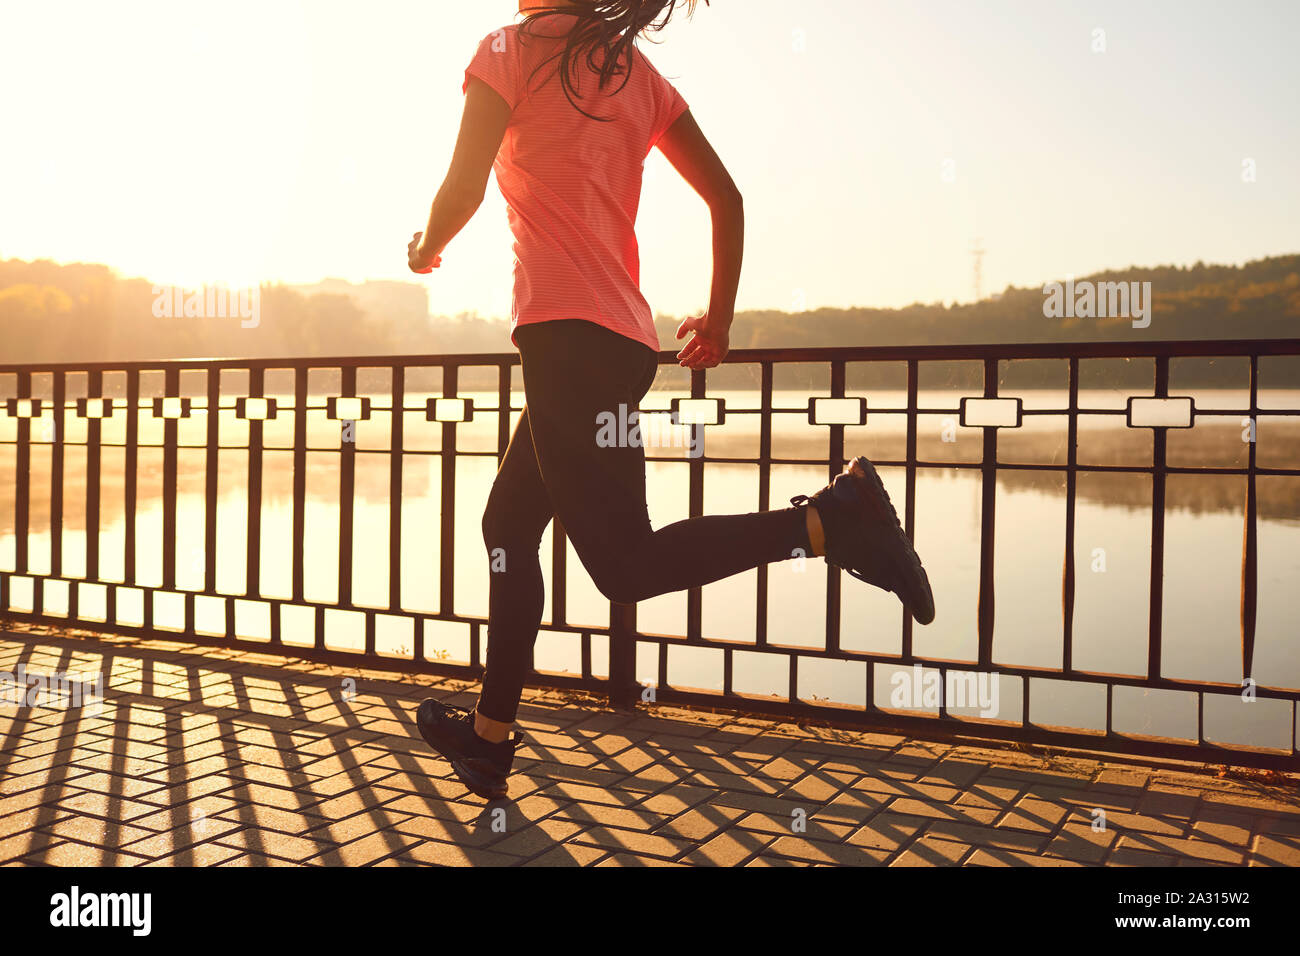 Runners legs run along the road by the lake in the park Stock Photo